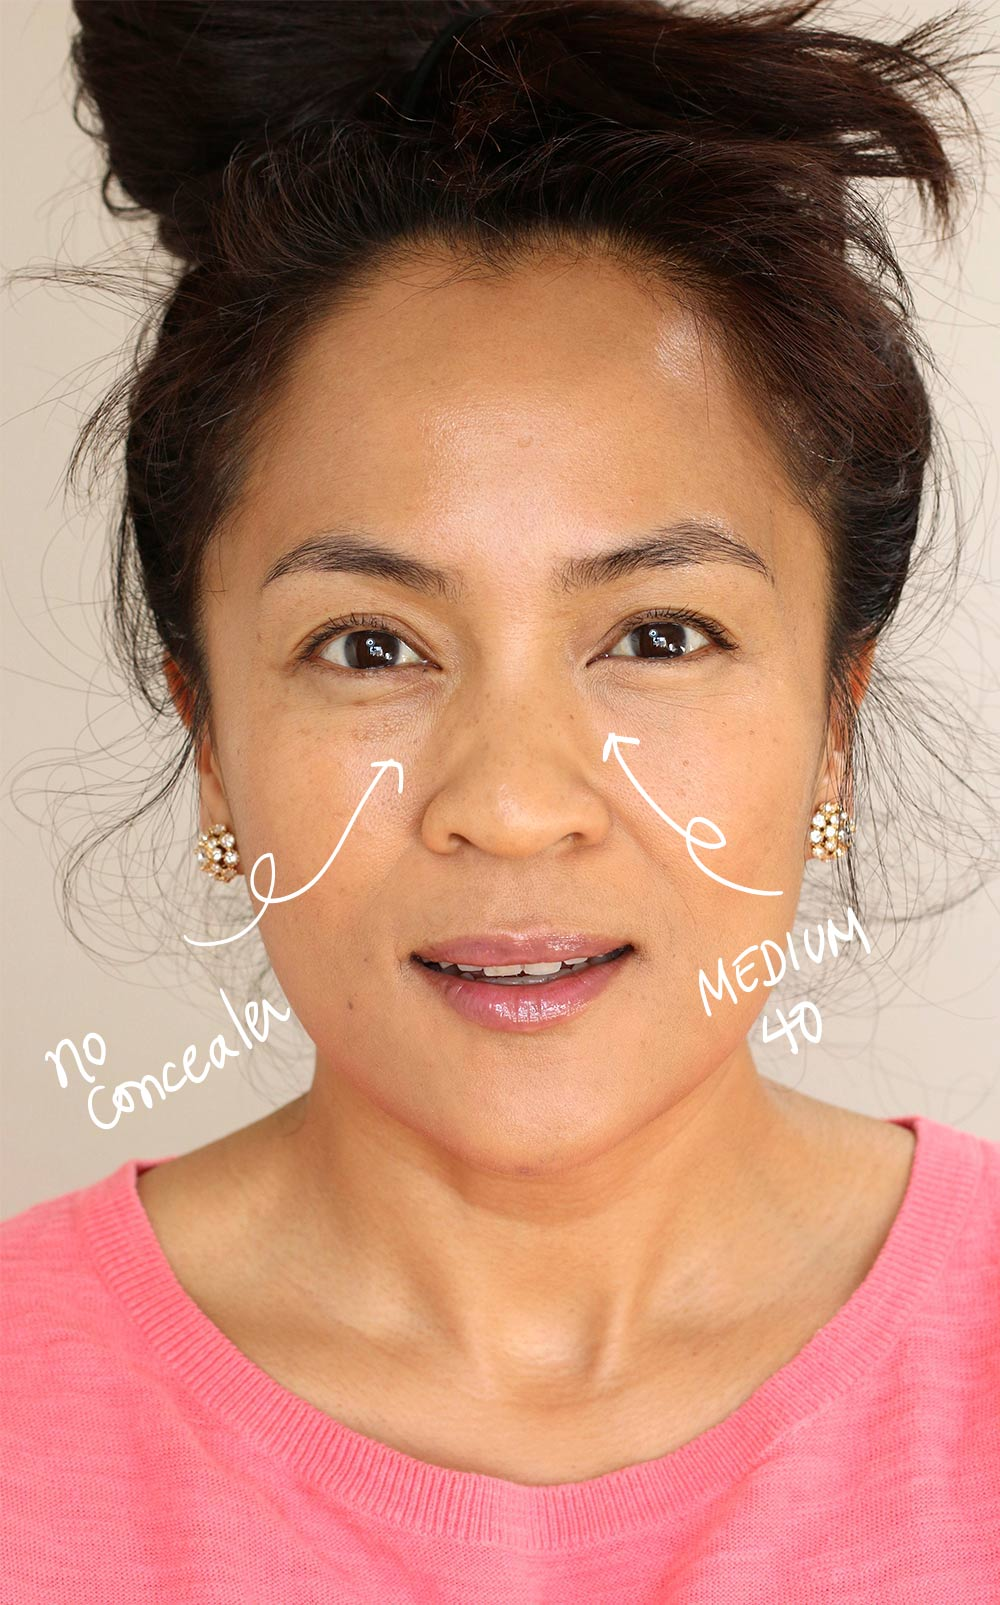 neutrogena hydro boost hydrating concealer before and after